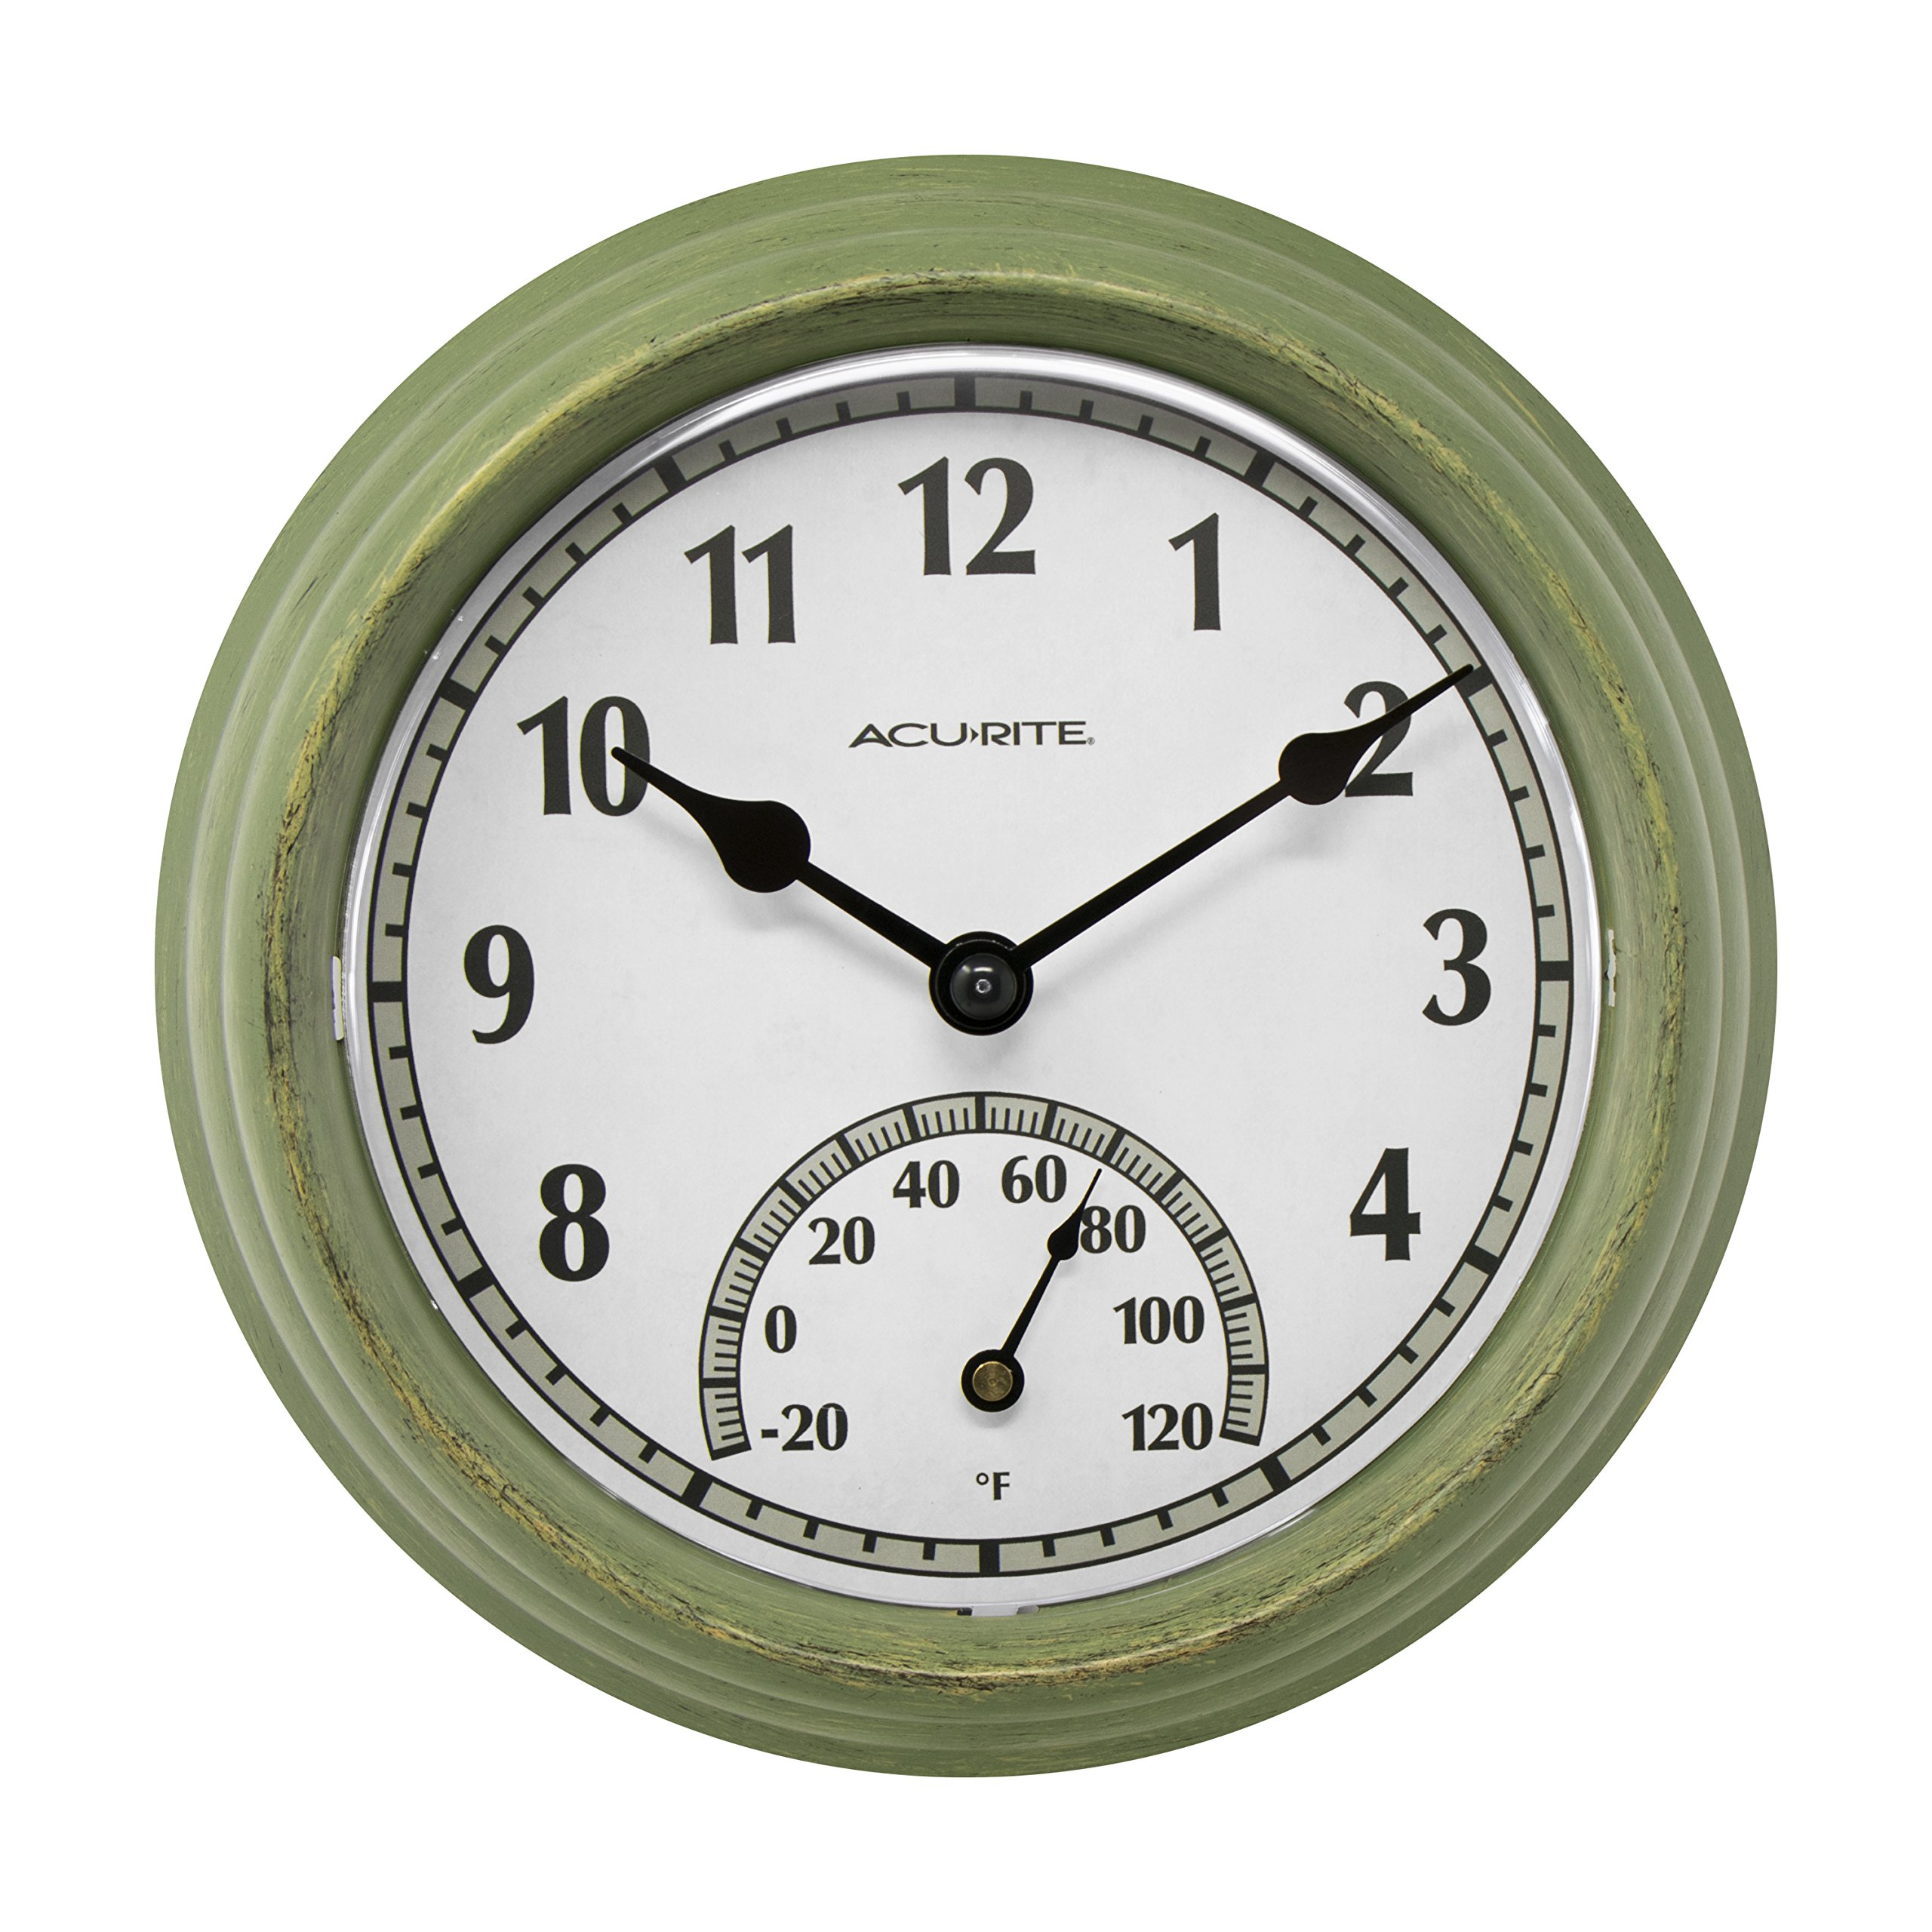 AcuRite 02470 Rustic Green Outdoor Clock with Thermometer, 8.5''